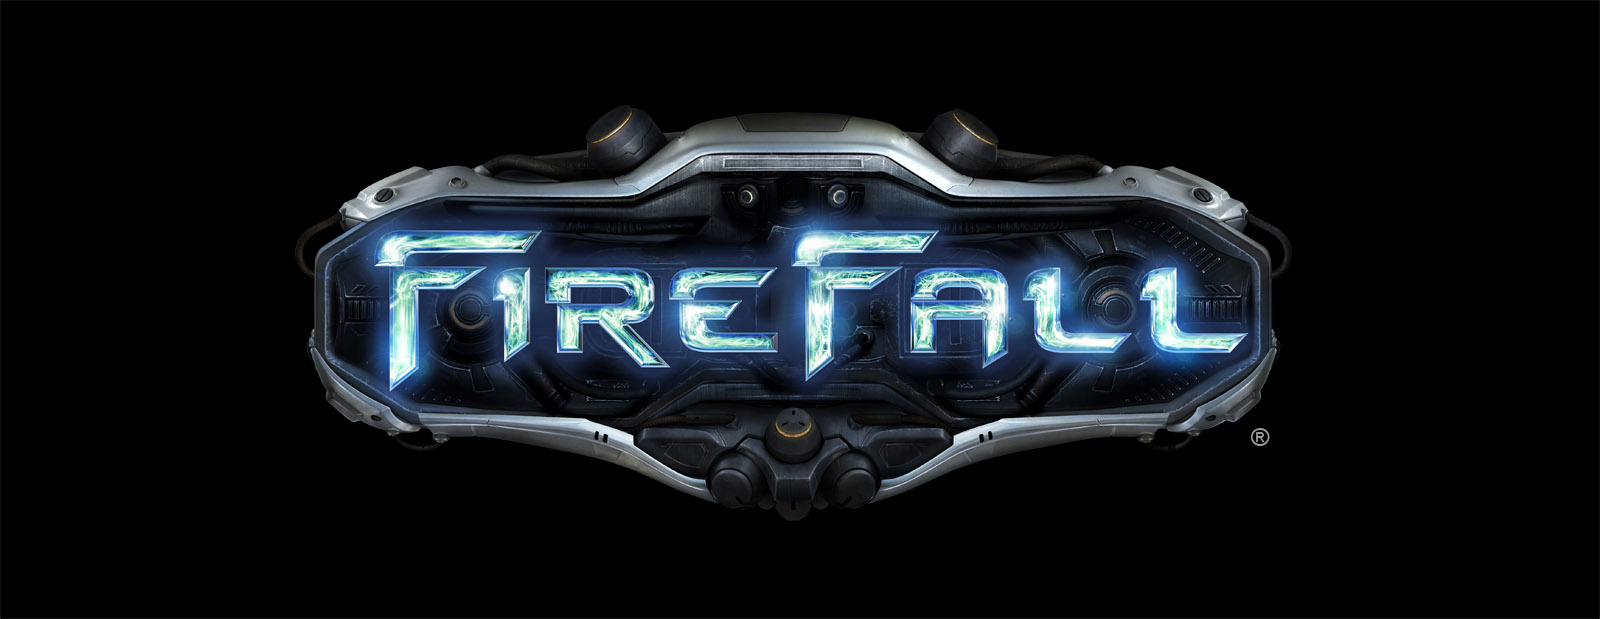 Firefall - A Massively Multiplayer Online First Person Shooter